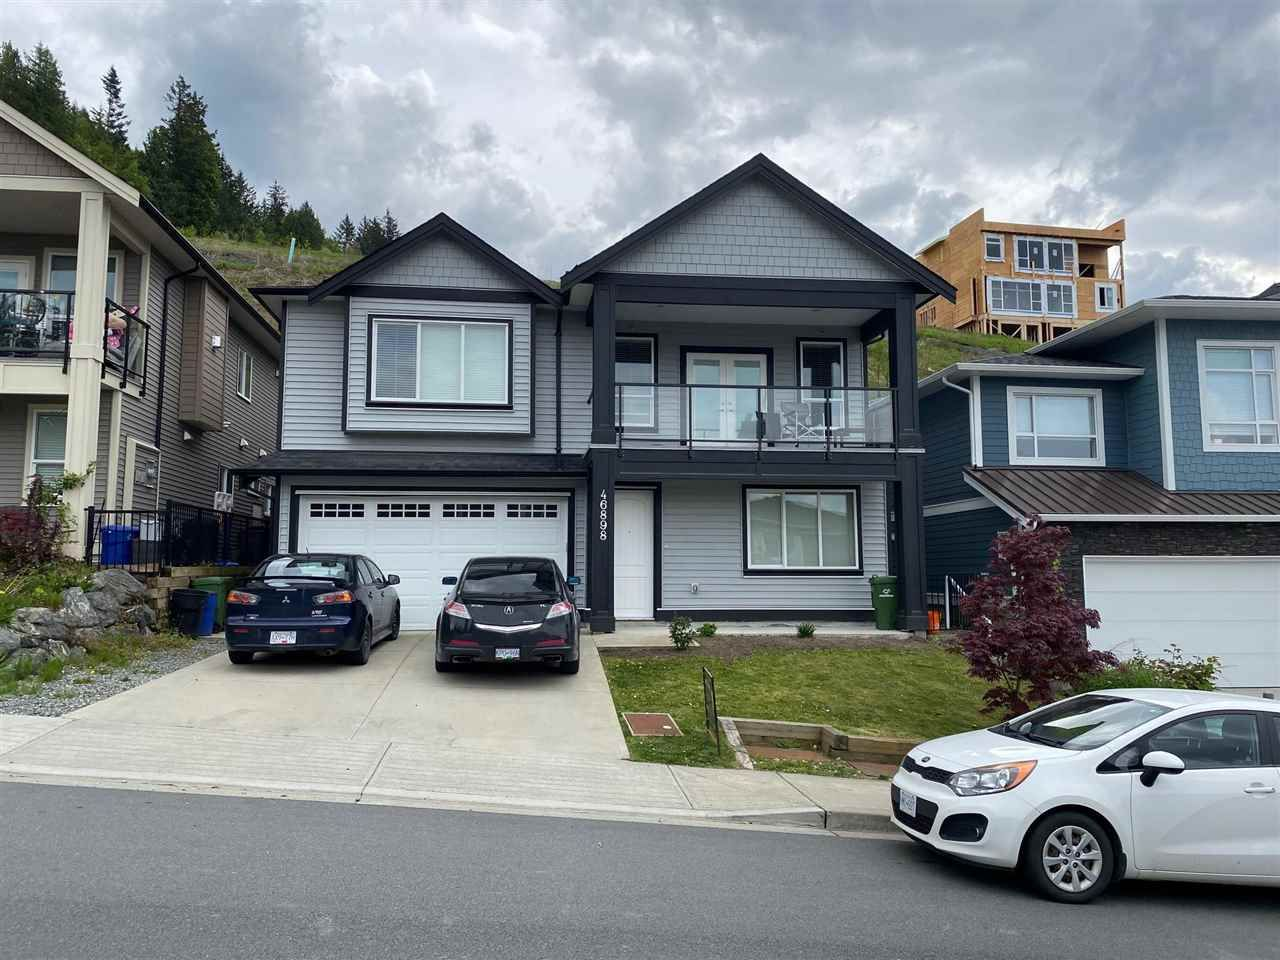 """Main Photo: 46898 SYLVAN Drive in Chilliwack: Promontory House for sale in """"PROMONTORY"""" (Sardis)  : MLS®# R2578465"""